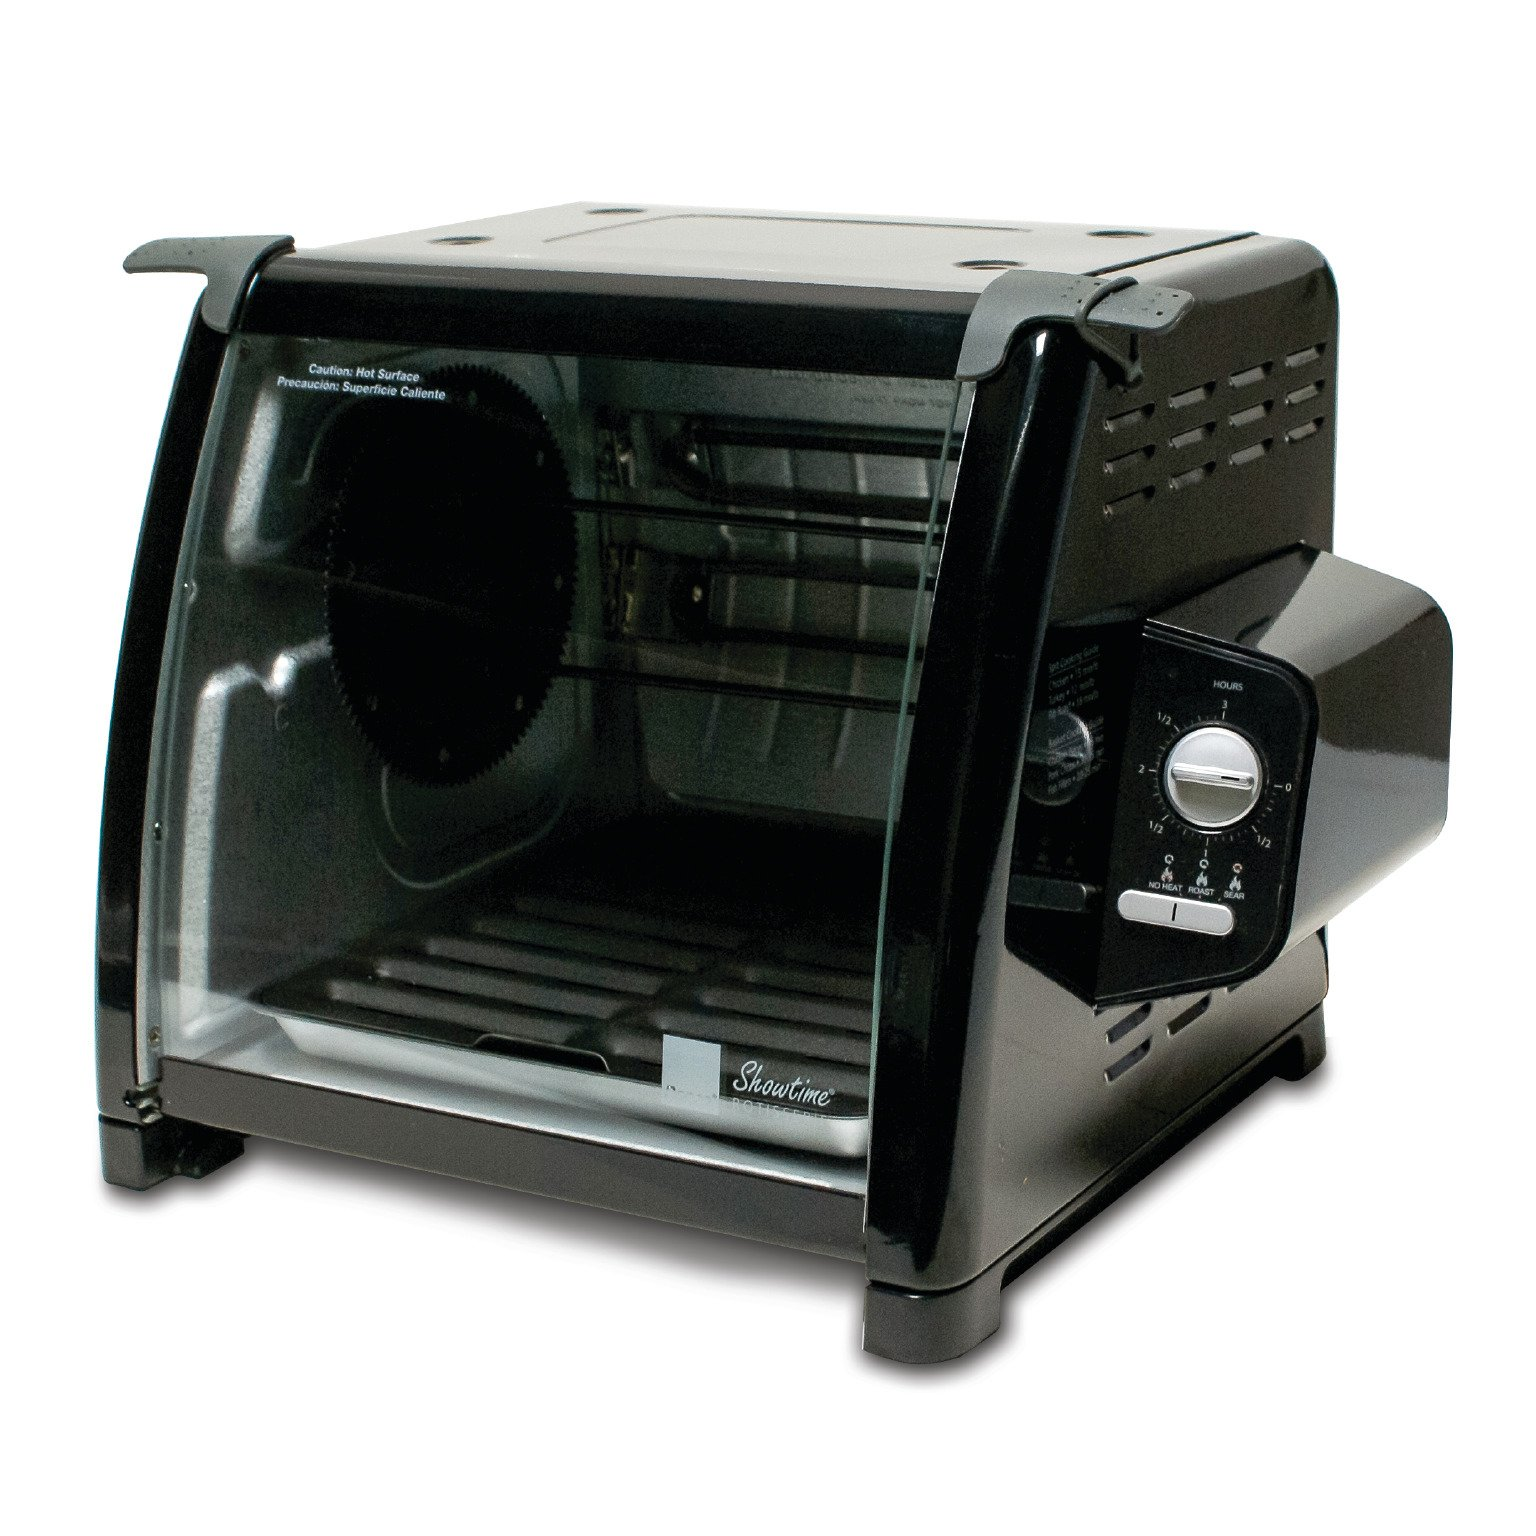 Ronco 5500 Series Rotisserie Oven, Black by Ronco (Image #4)